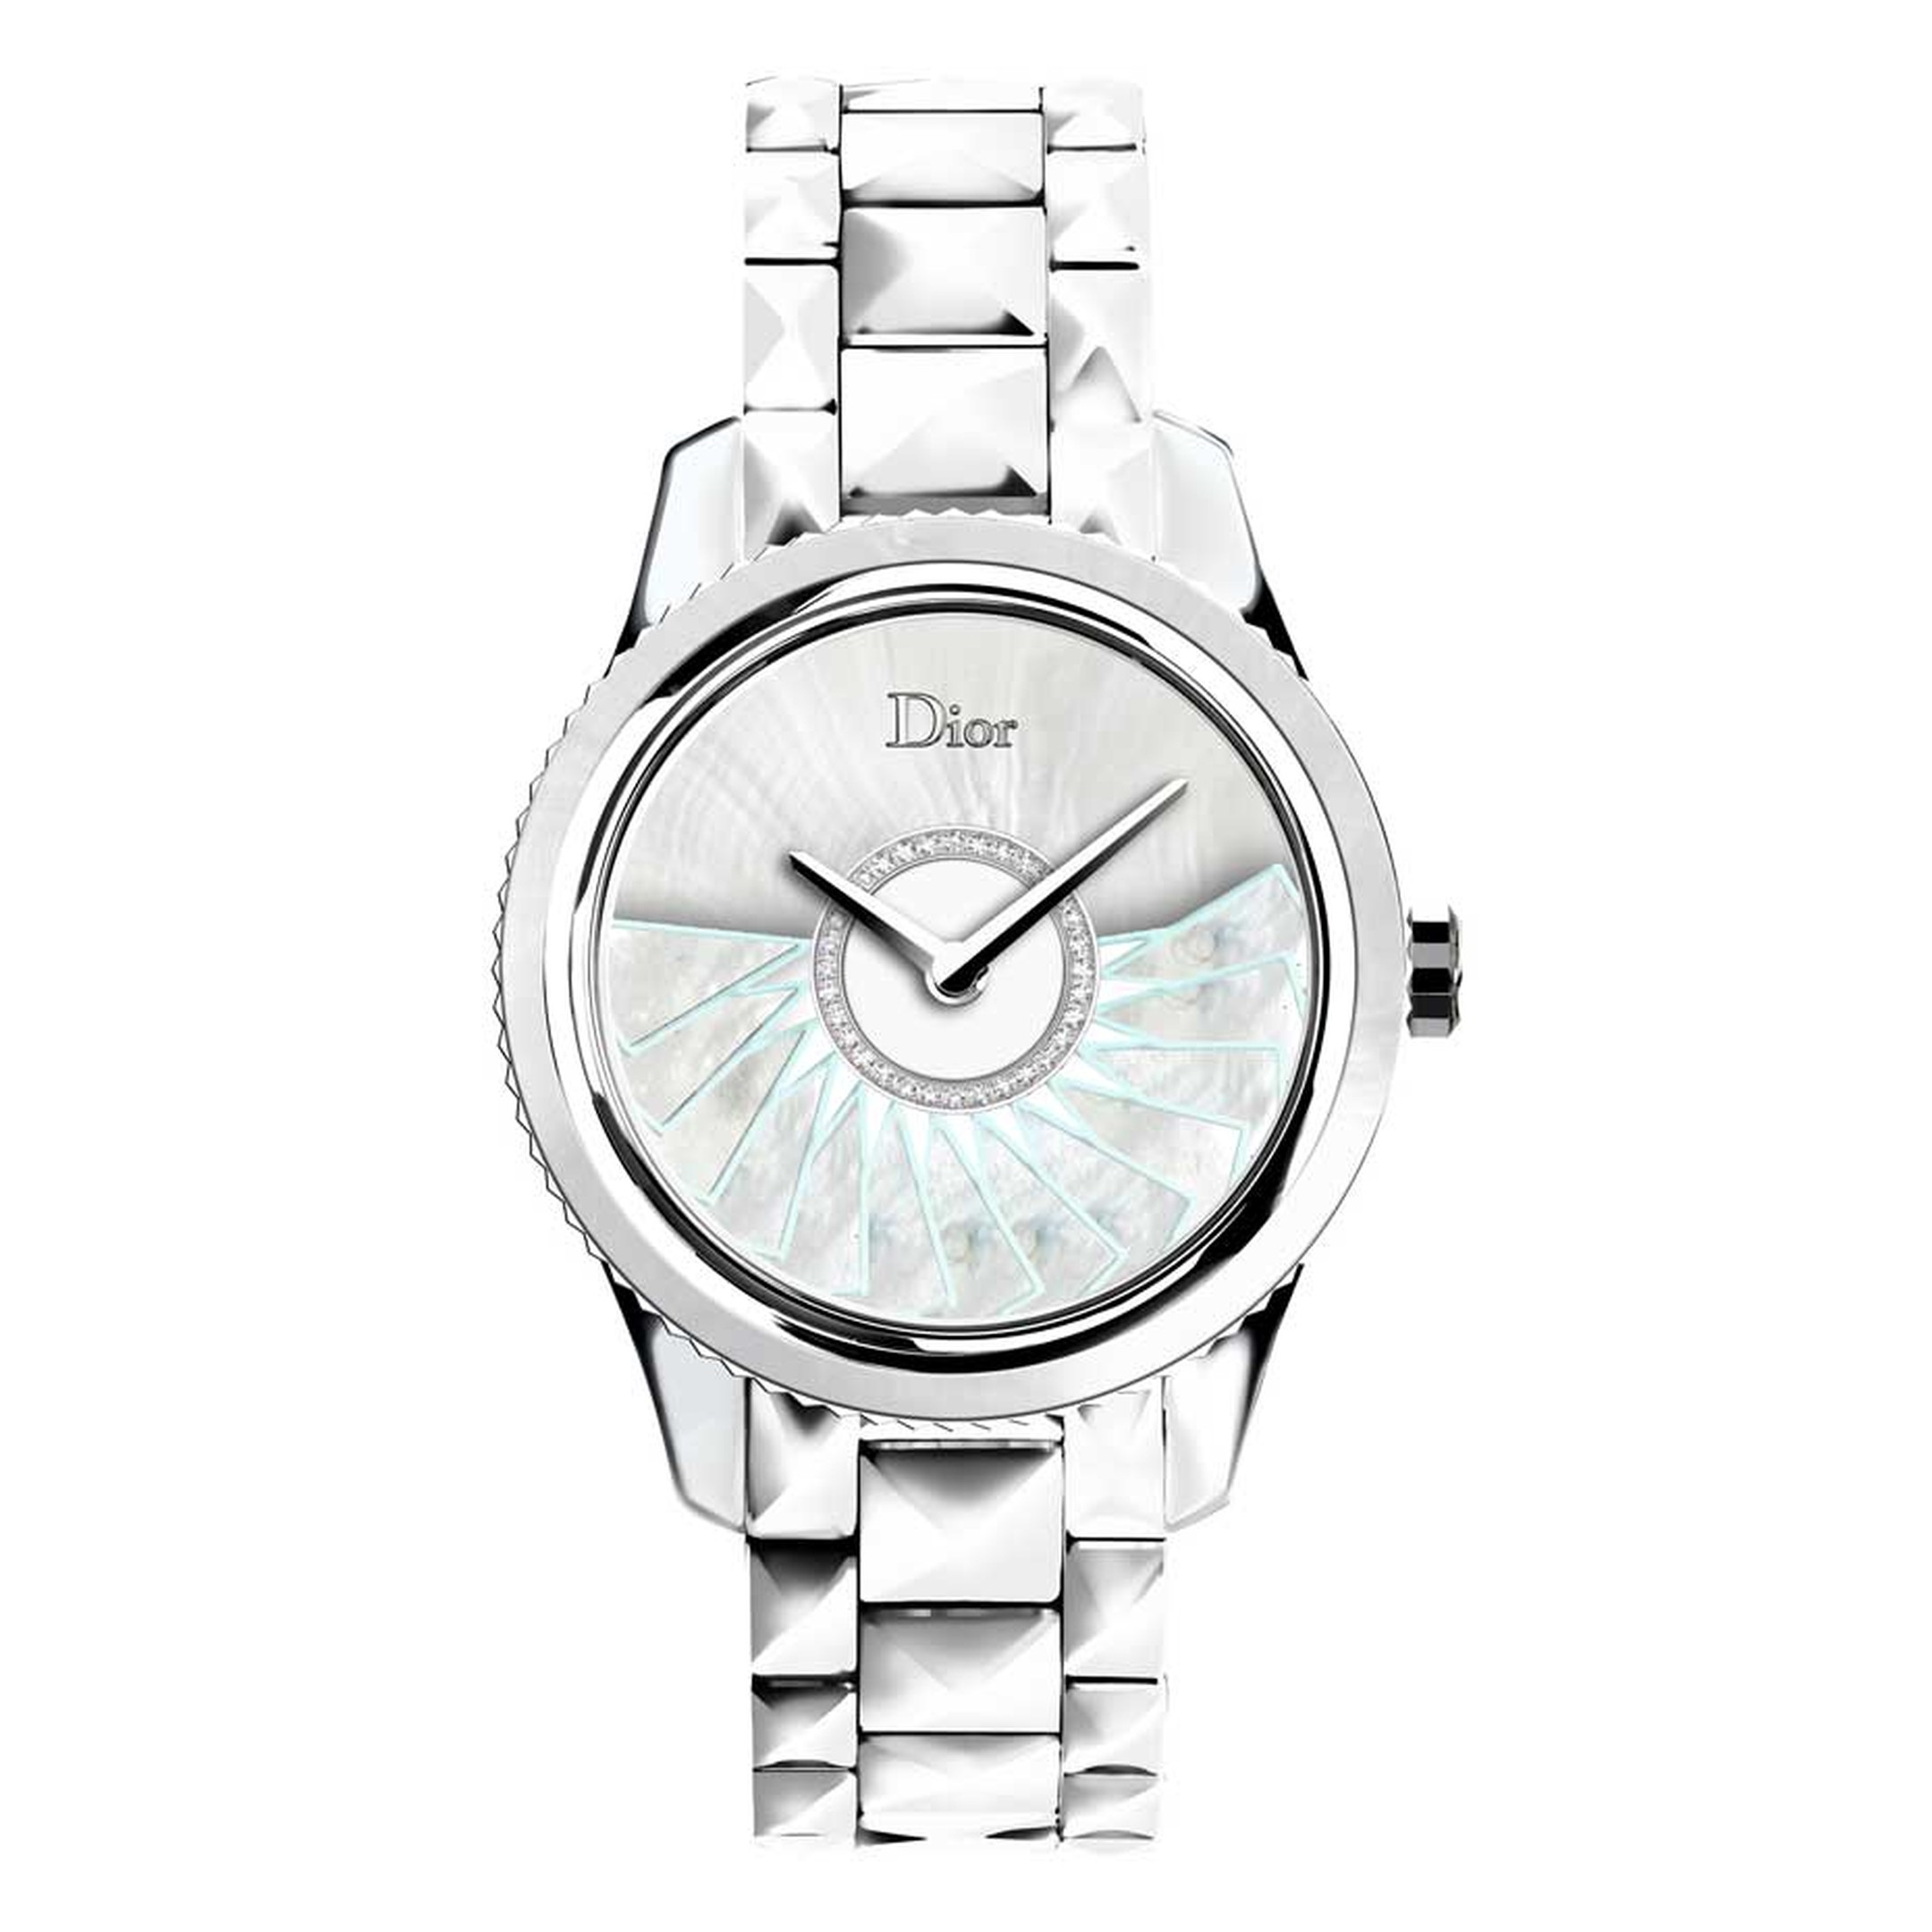 The Dior VIII Grand Bal Plissé Soleil watch in pale blue is available in a limited edition of 188 pieces. The oscillating weight mirrors the 'sweep' of a classic Dior ball gown.